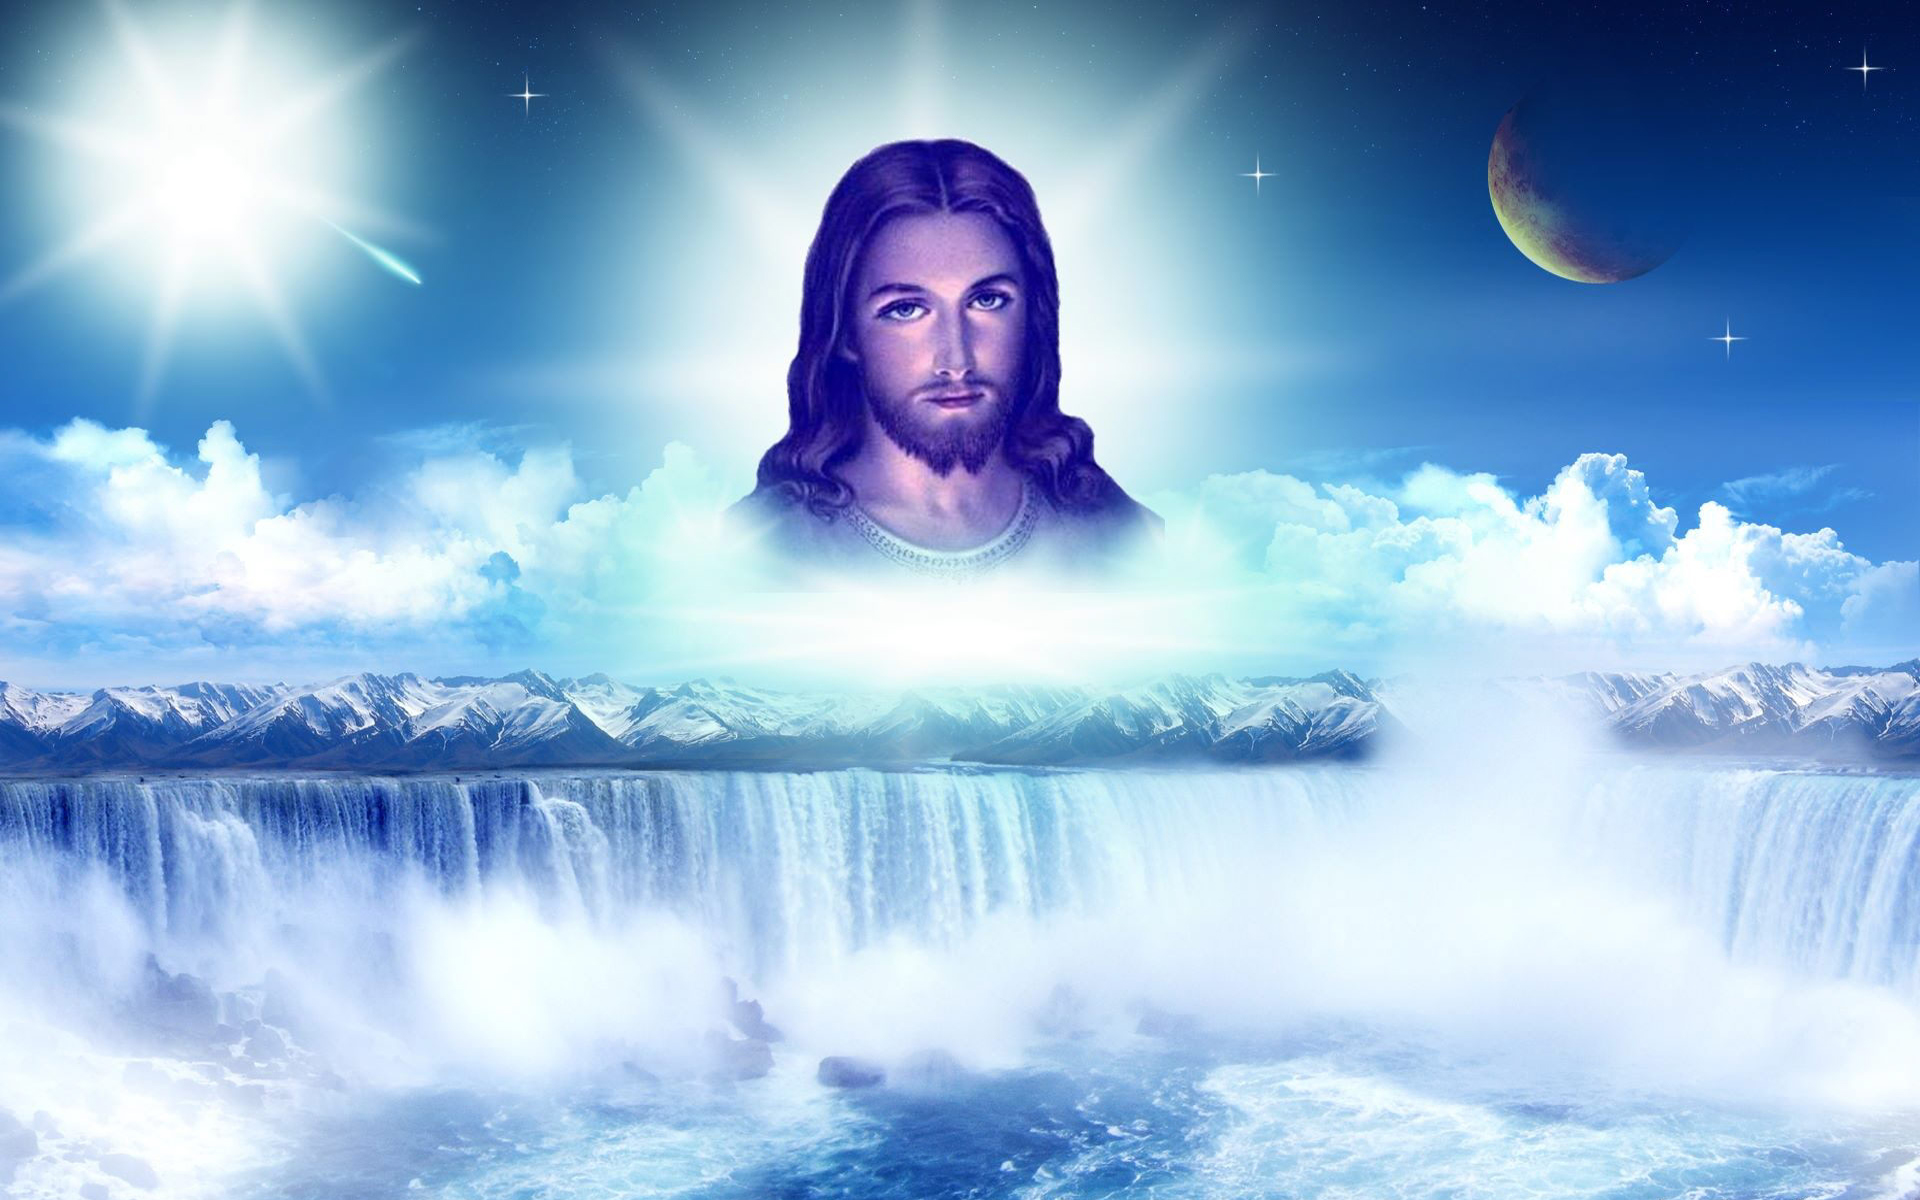 Beautiful Pictures Of Jesus Wallpaper - WallpaperSafari